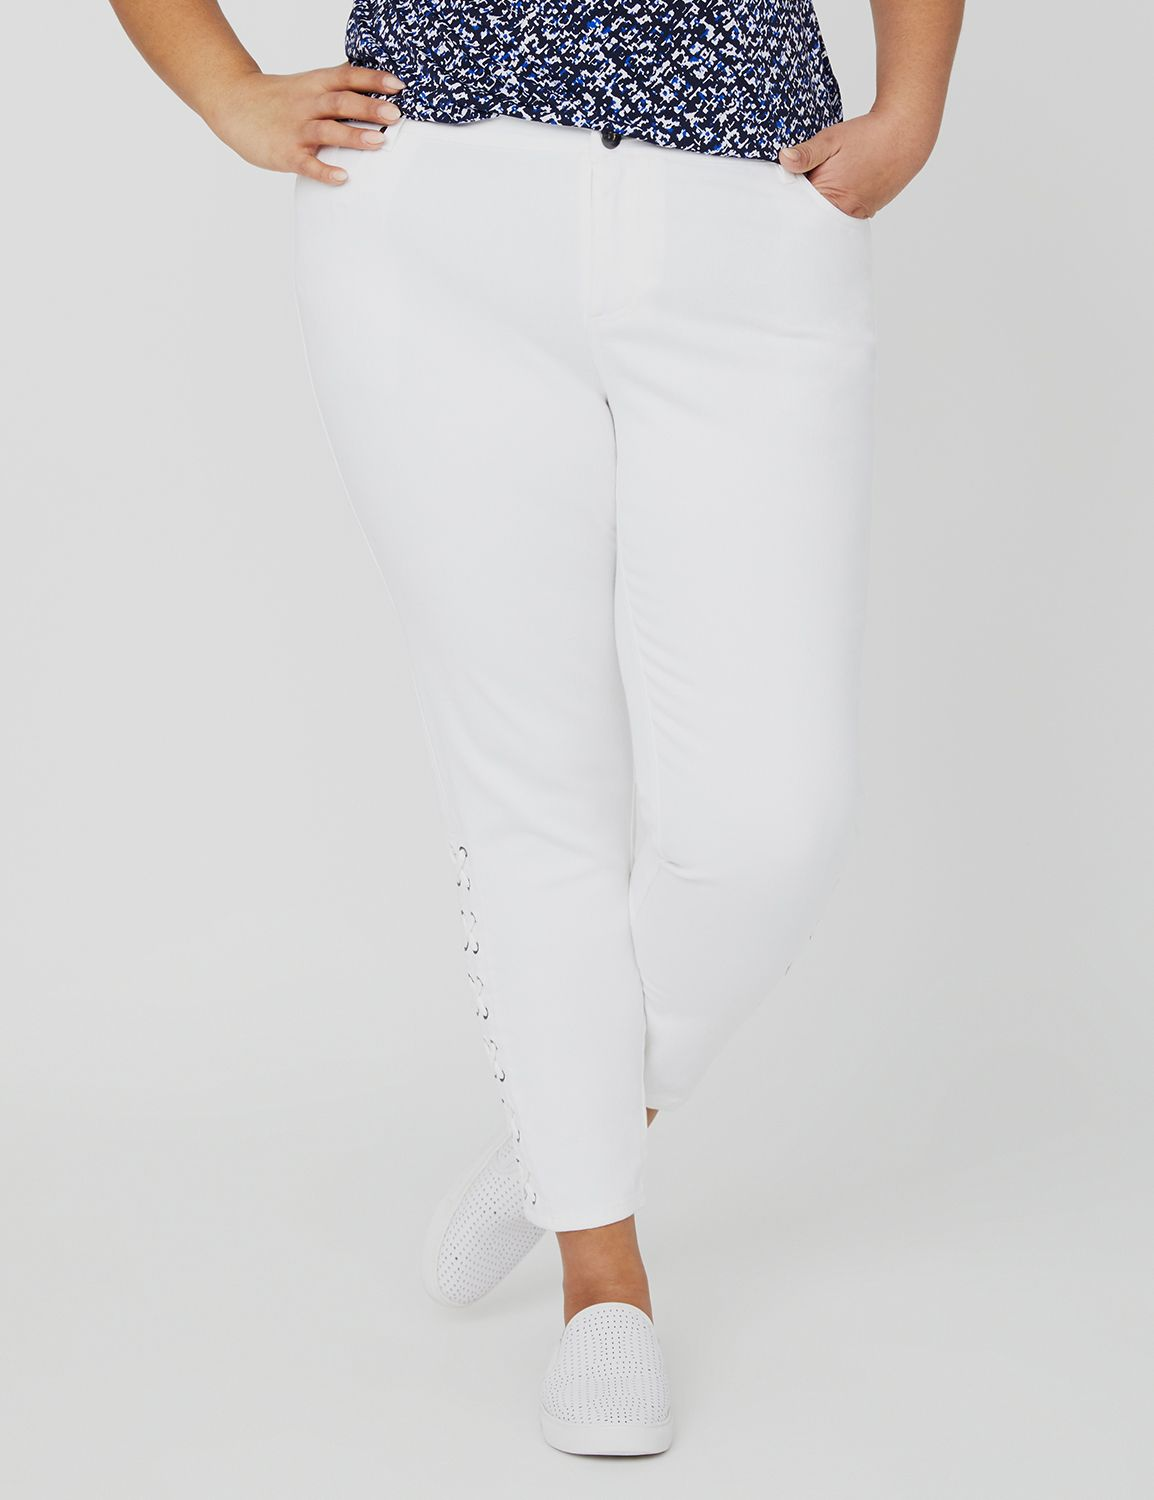 Curvy Collection Lace-Up White Jean 1091485 Curvy Collection Sateen Whi MP-300098786